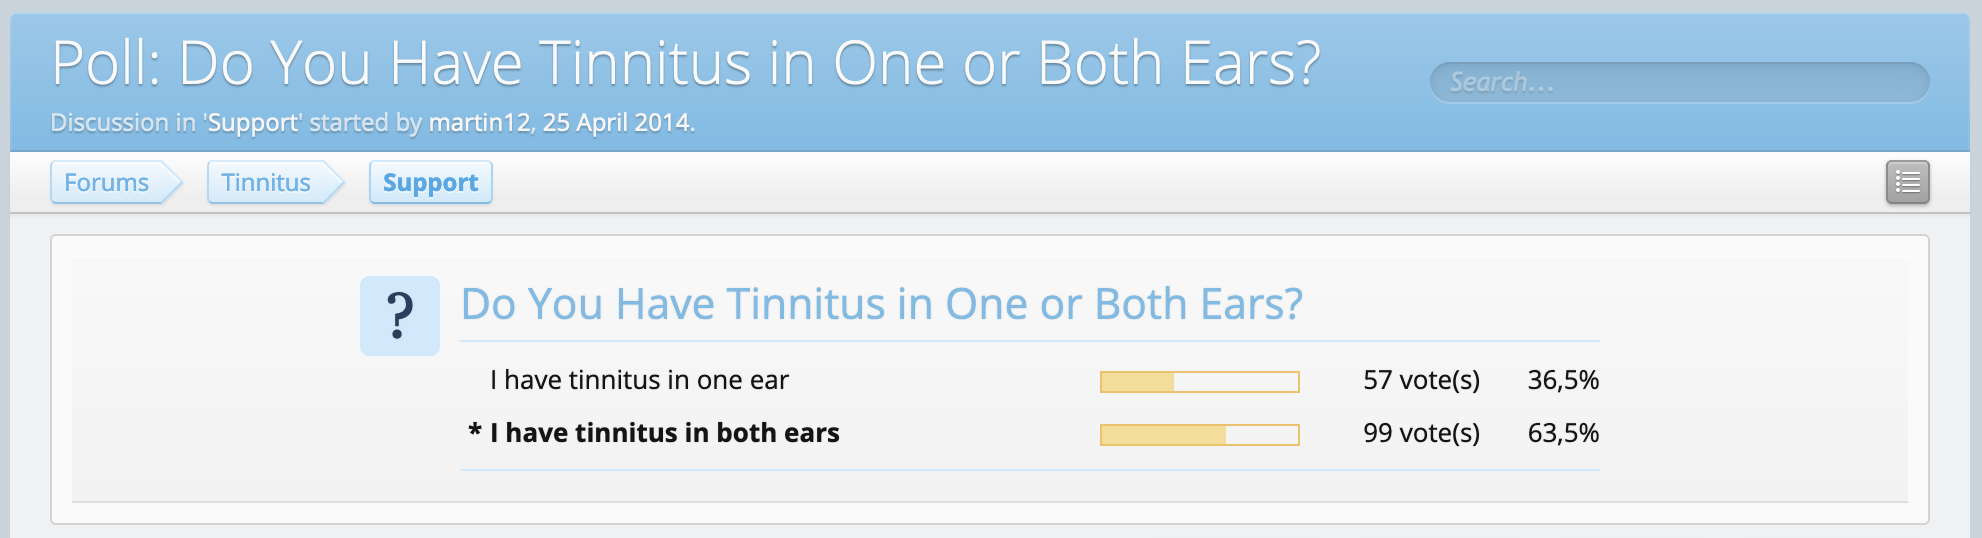 tinnitus-in-one-or-both-ears.png